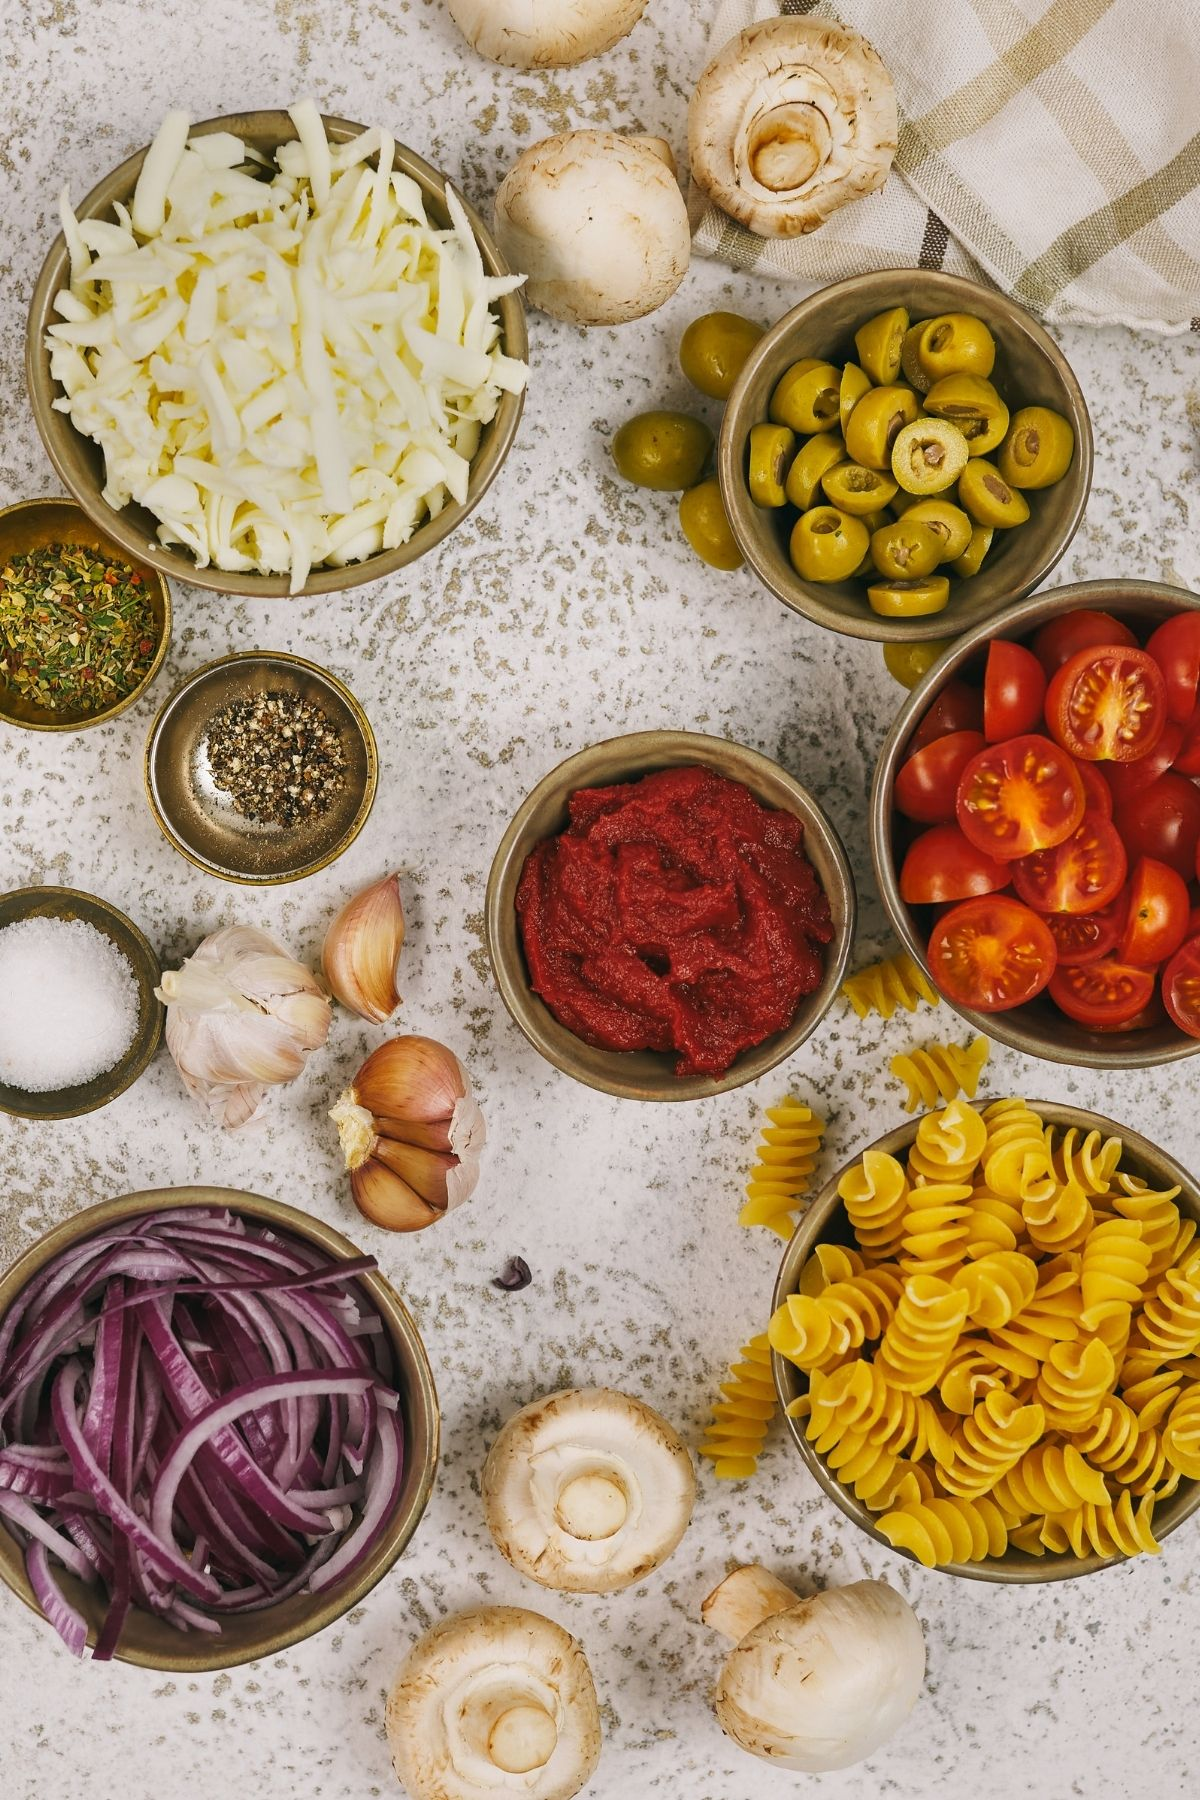 Ingredients for pasta in bowls on marble table